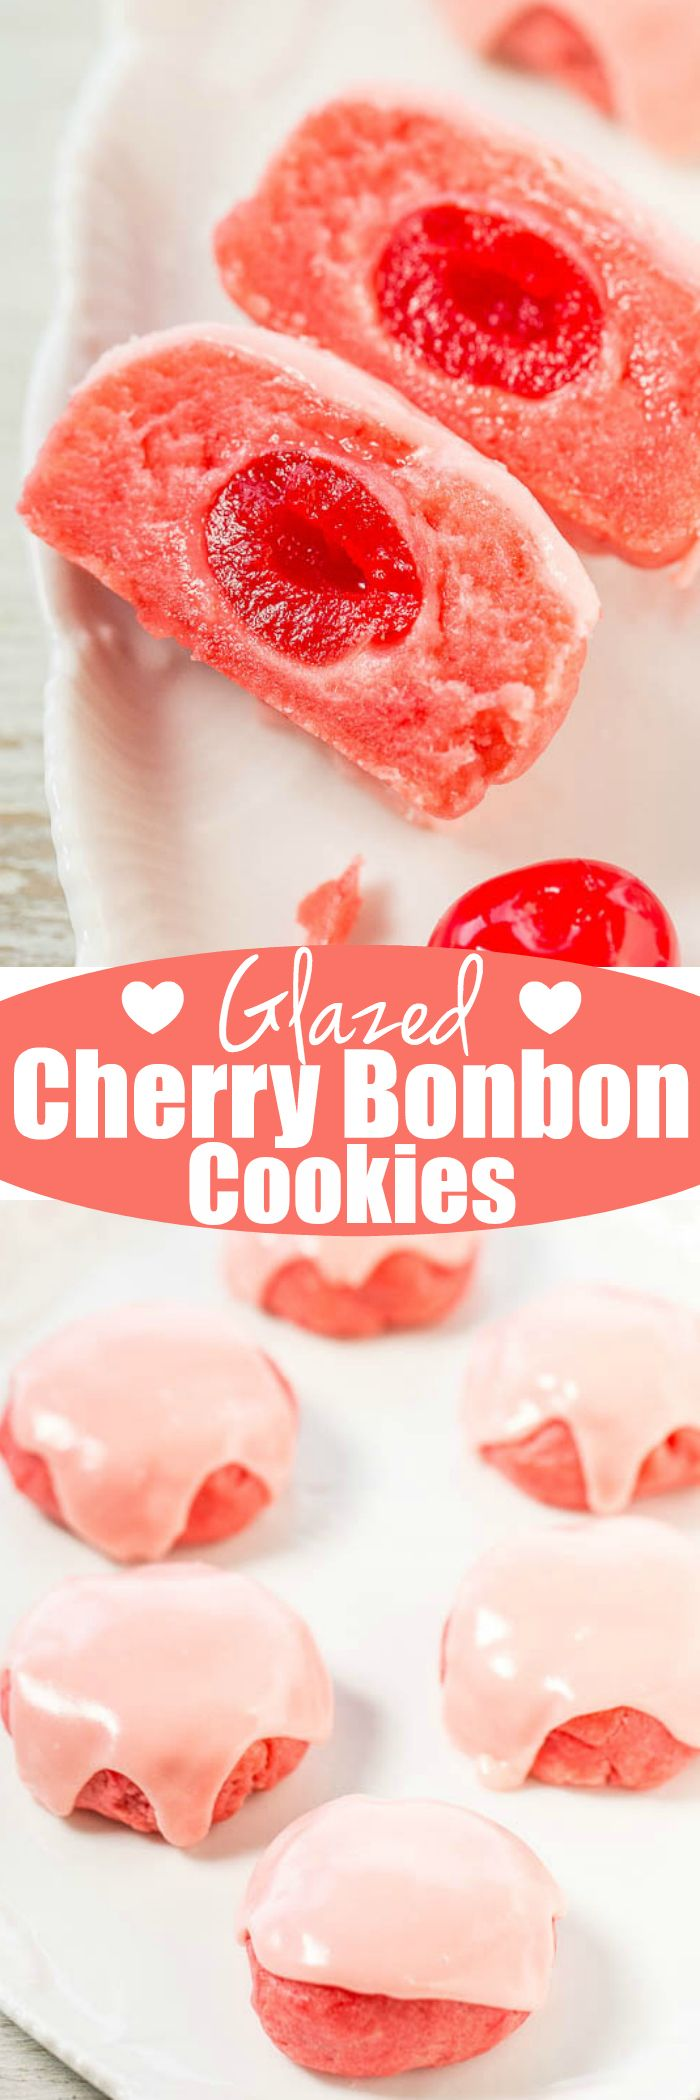 Glazed Cherry Bonbon Cookies - Soft, buttery cookies with the fun surprise of a cherry baked in!! The cherry juice glaze boosts the cherry flavor even more! Easy cookies that make everyone smile!!